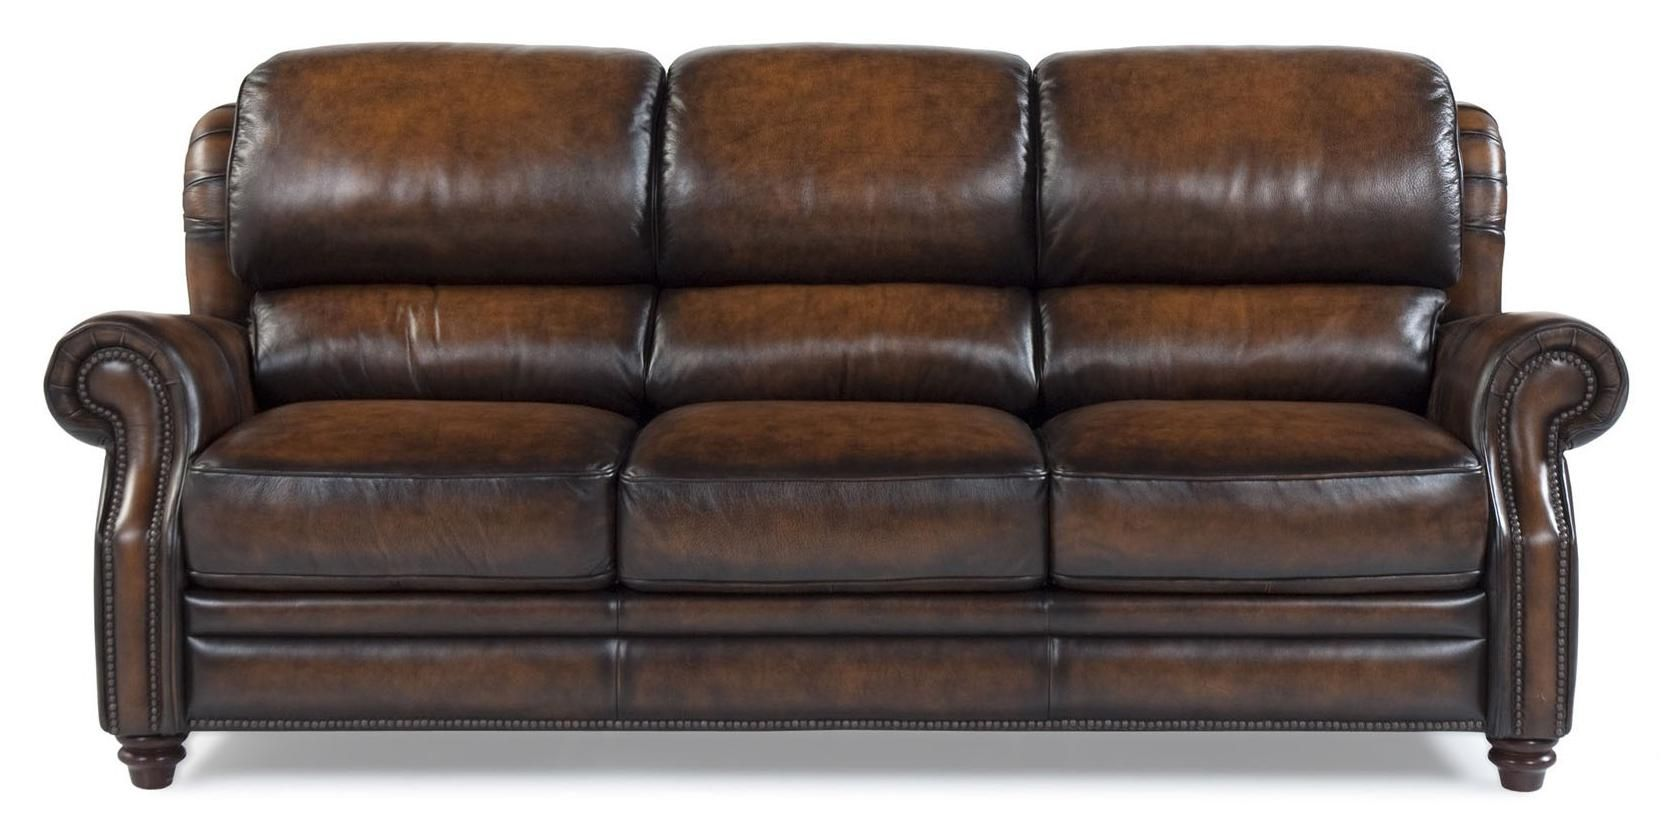 - 7736 TRADITIONAL LEATHER SOFA WITH BUSTLE BACK BY FUTURA LEATHER